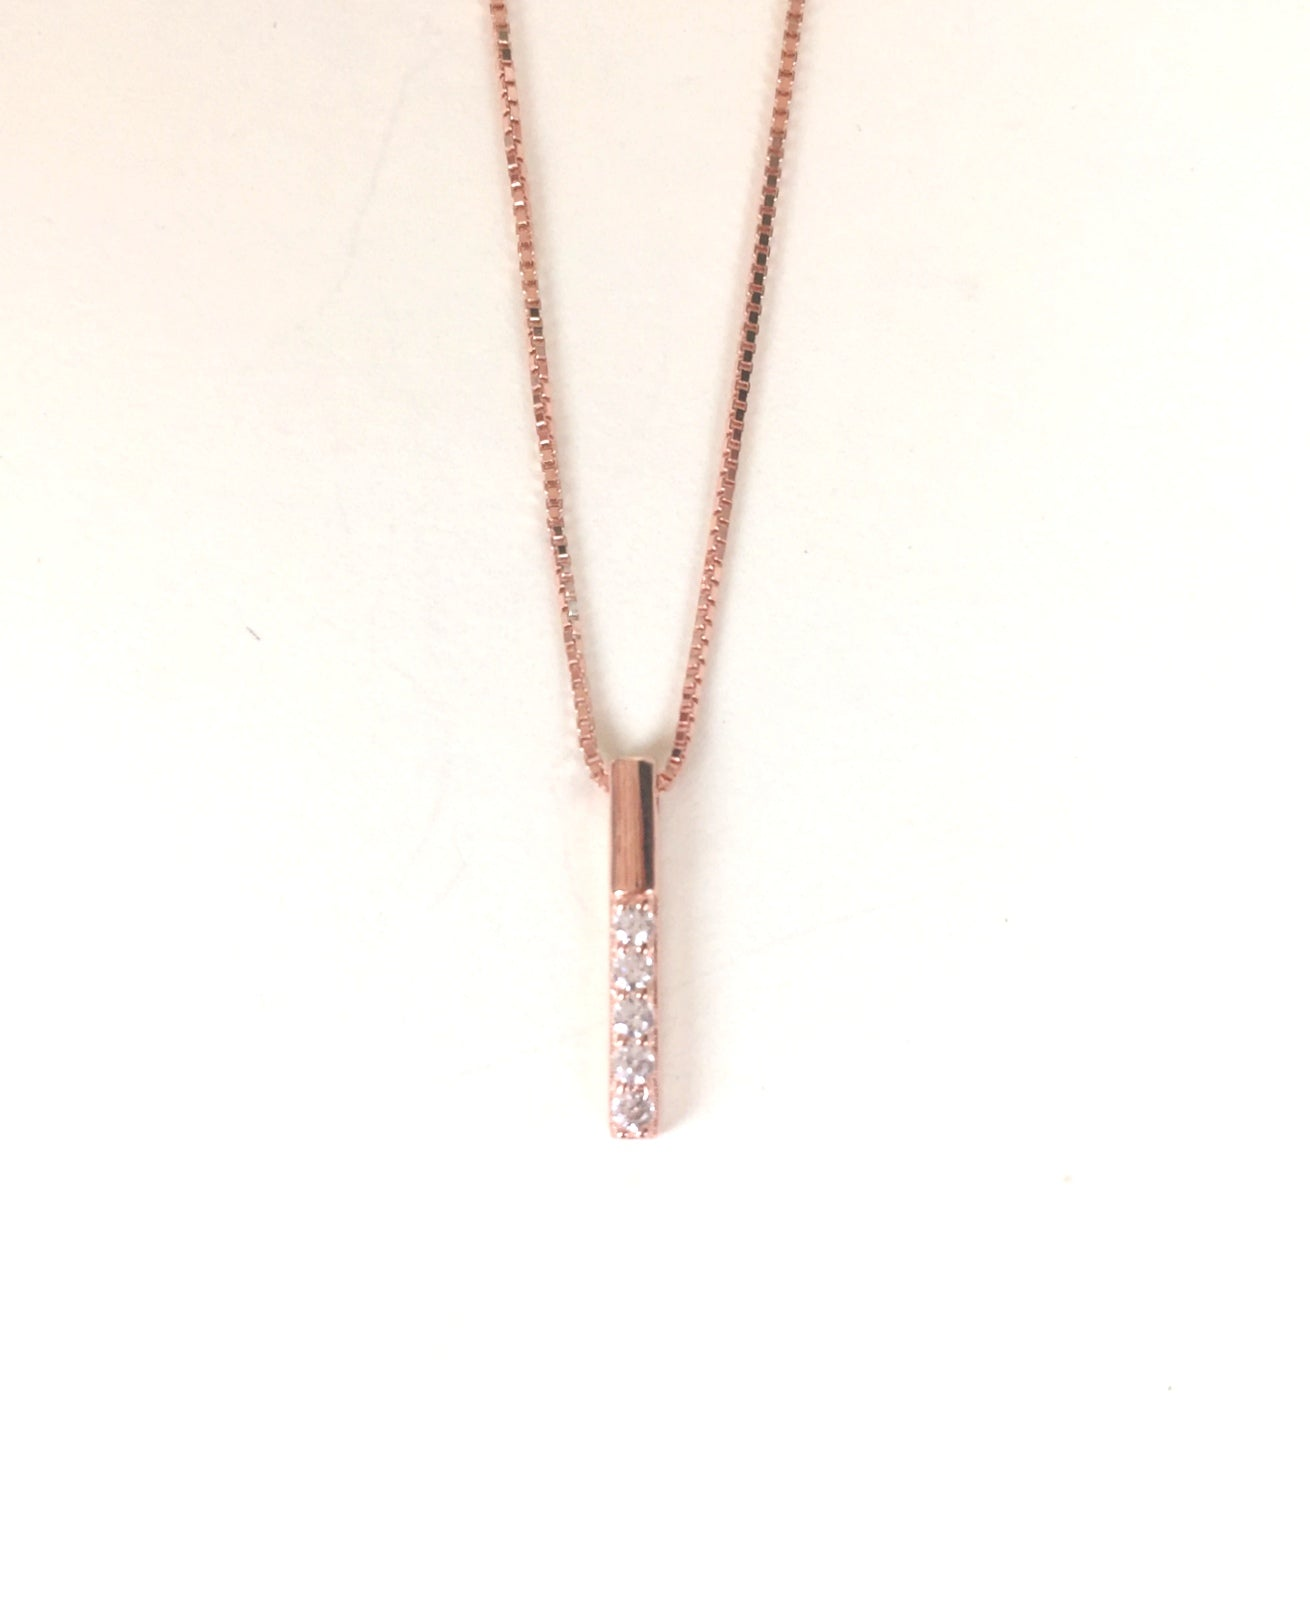 ROSE GOLD BAR PAVE CZ STERLING SILVER NECKLACE